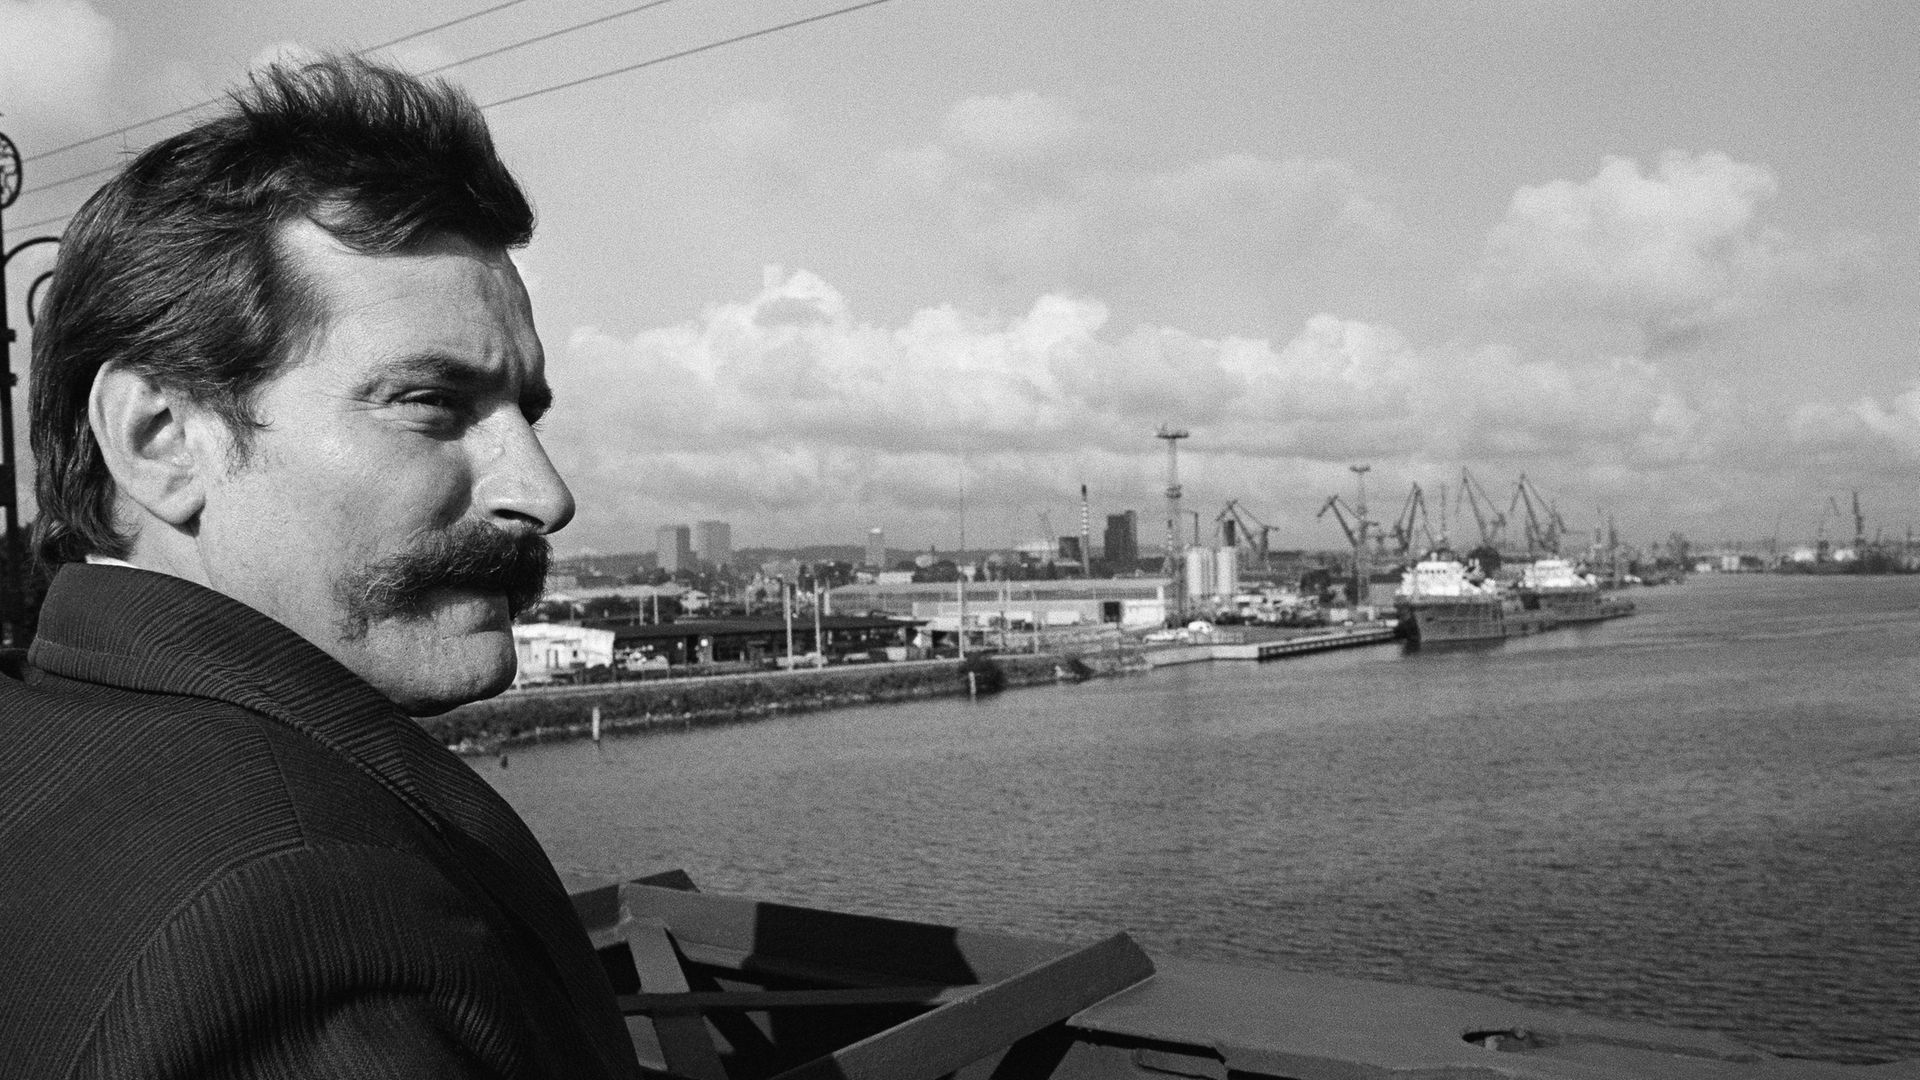 Leader of Polish trade union Solidarnosc (Solidarity) Lech Walesa at the Gdansk docks. - Credit: Sygma via Getty Images